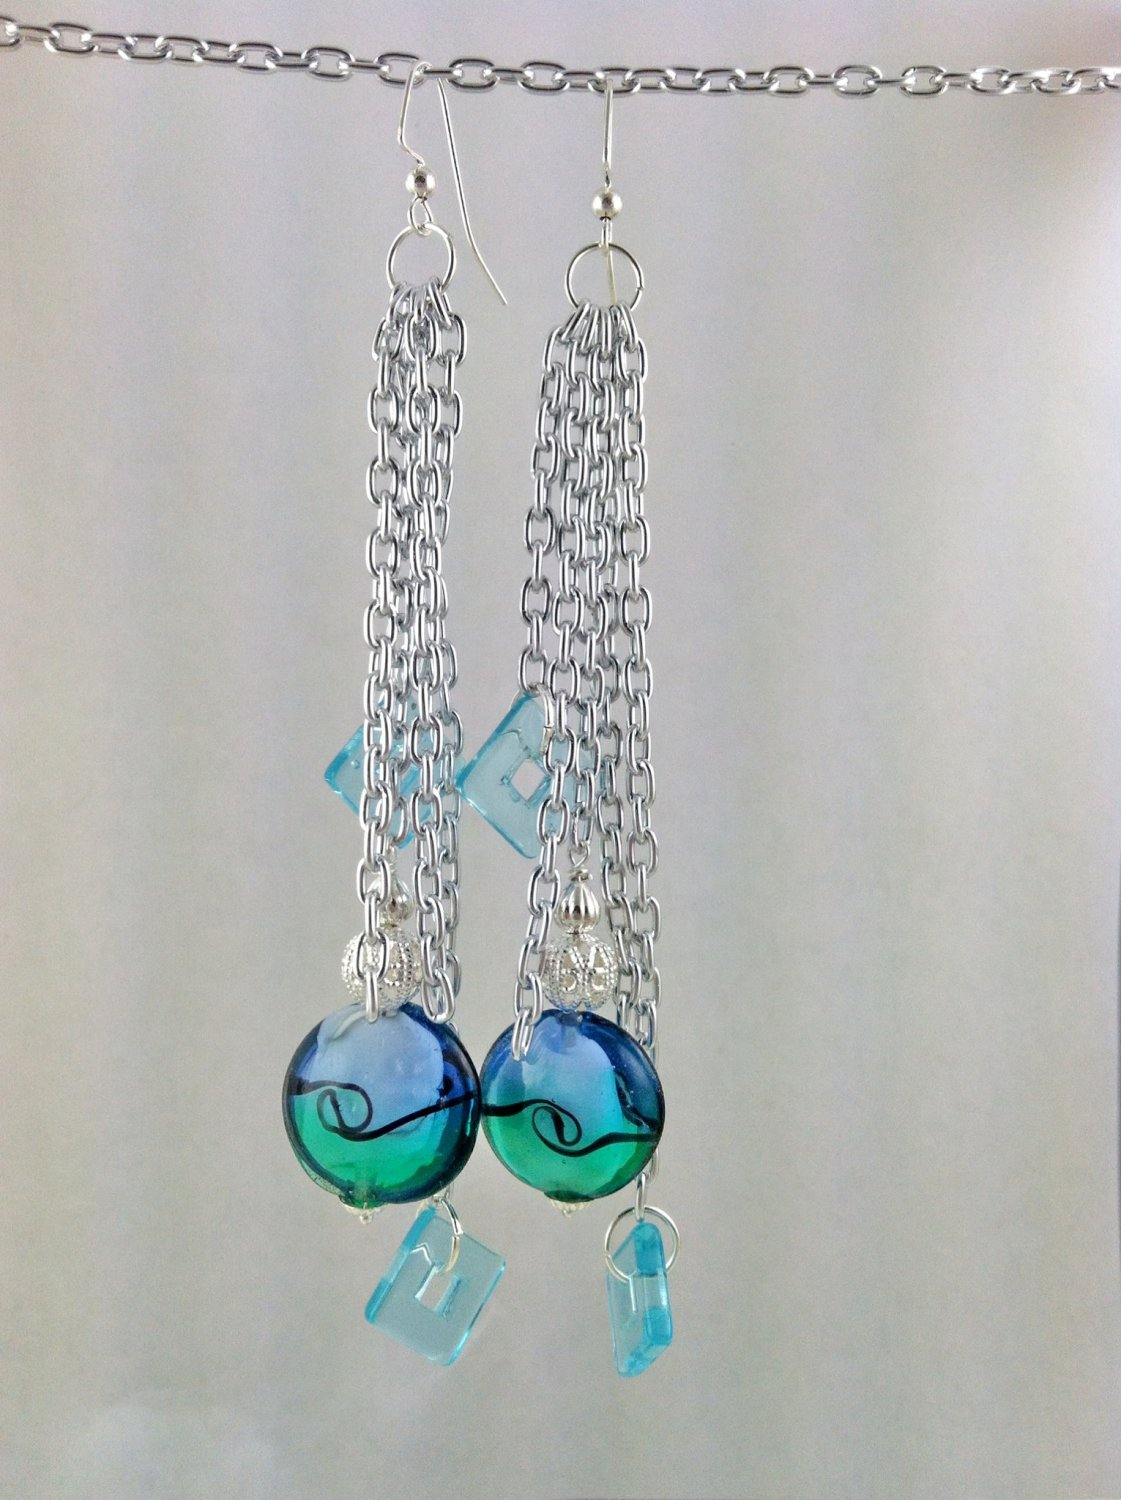 Large Diva Blue and Silver  Lampwork Tassle Earrings Hand Crafted